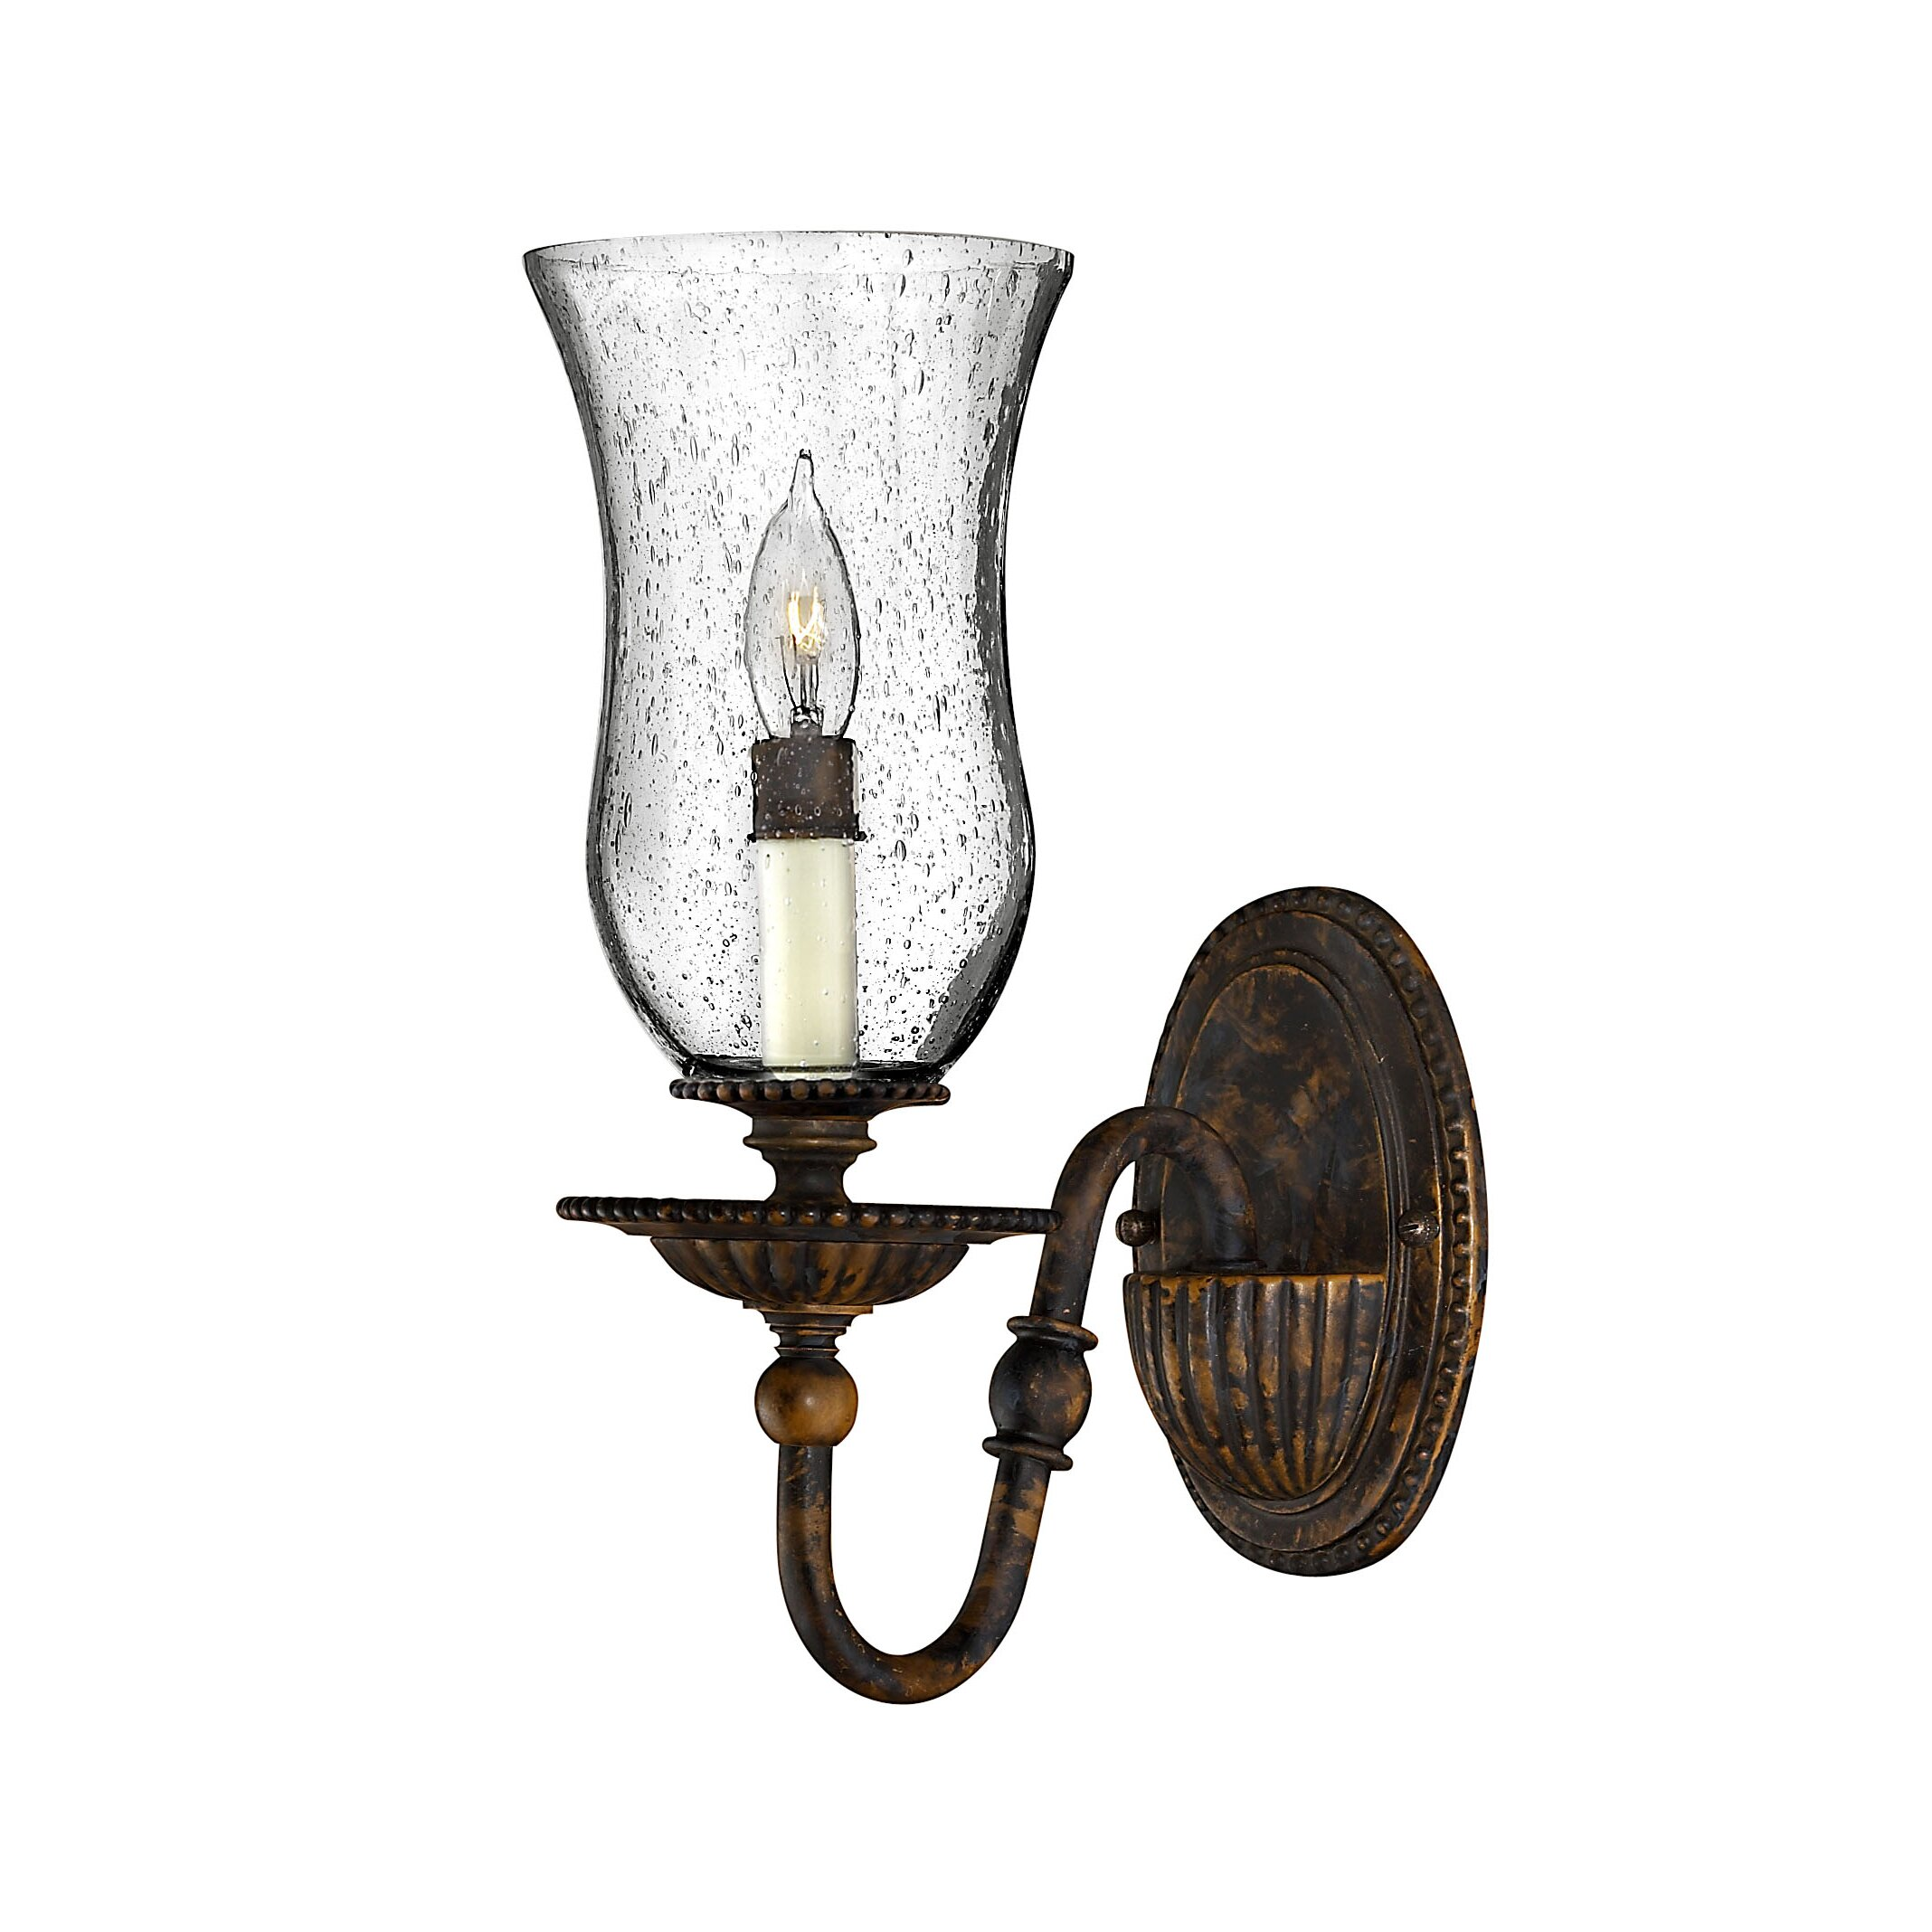 Wall Sconces At Wayfair : Hinkley Lighting Rockford 1 Light Wall Sconce & Reviews Wayfair